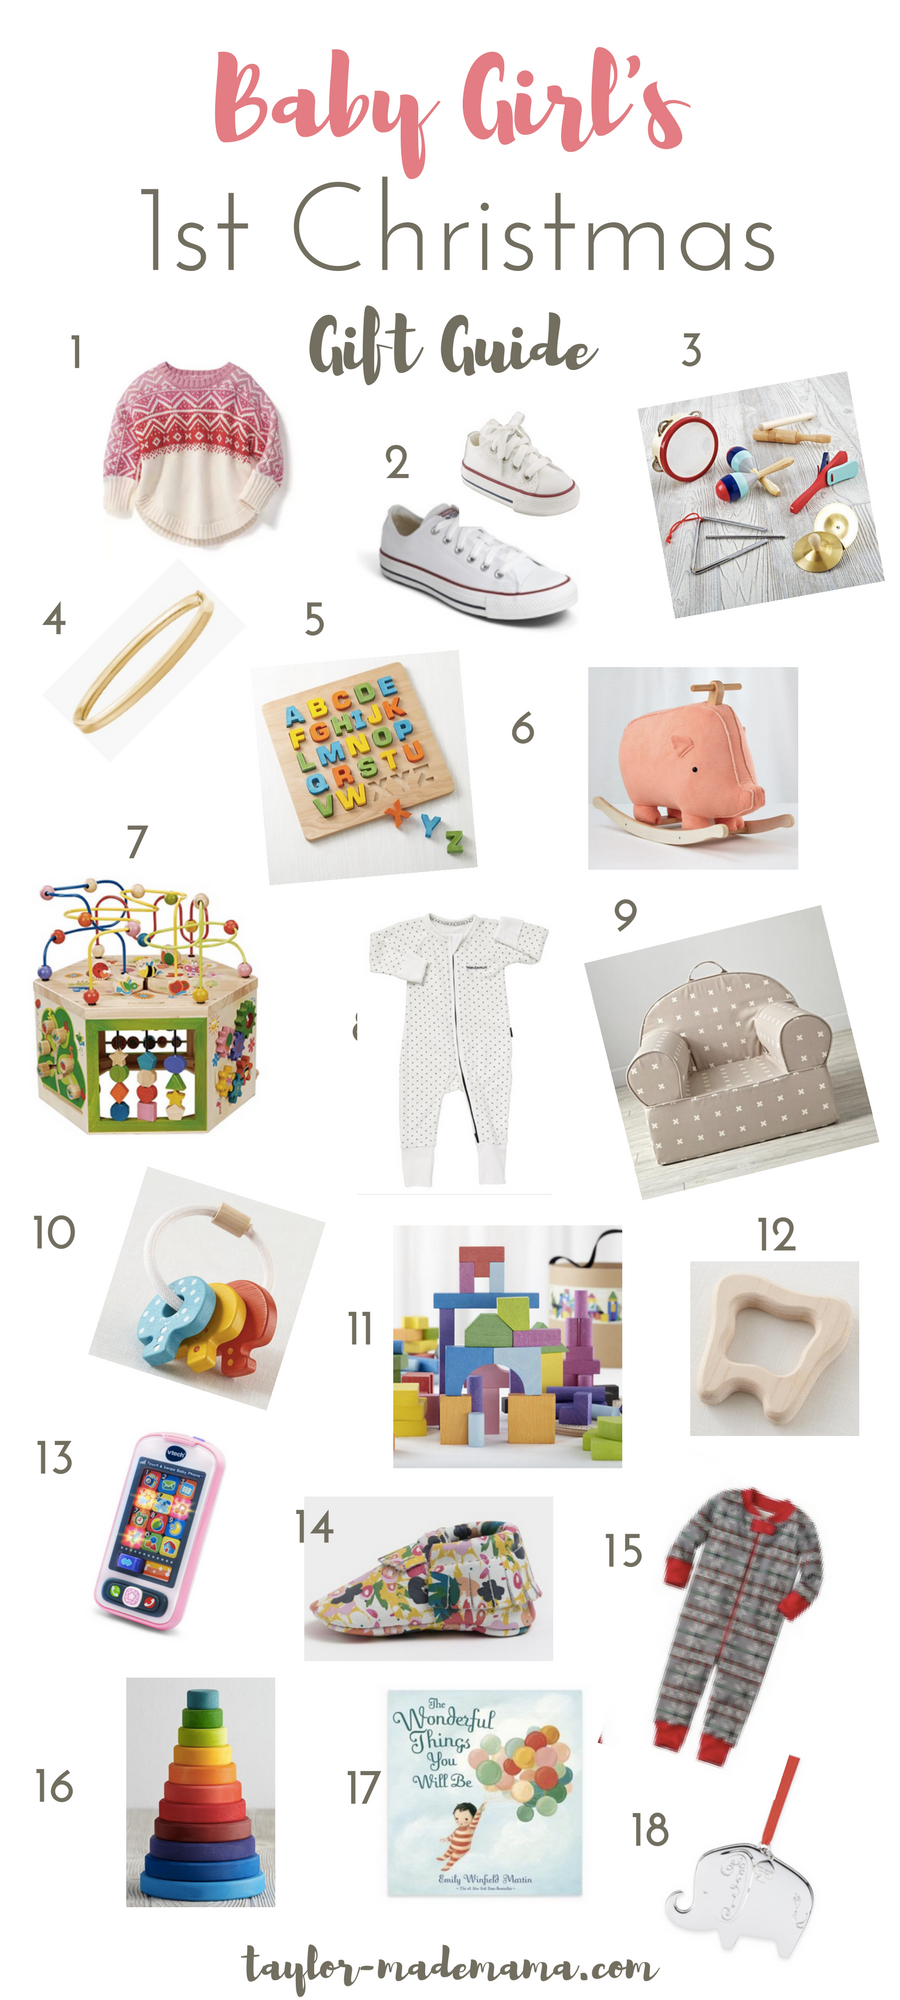 your babys first christmas is such a special occasion here is a list of 18 gift ideas to give a baby girl on her 1st christmas